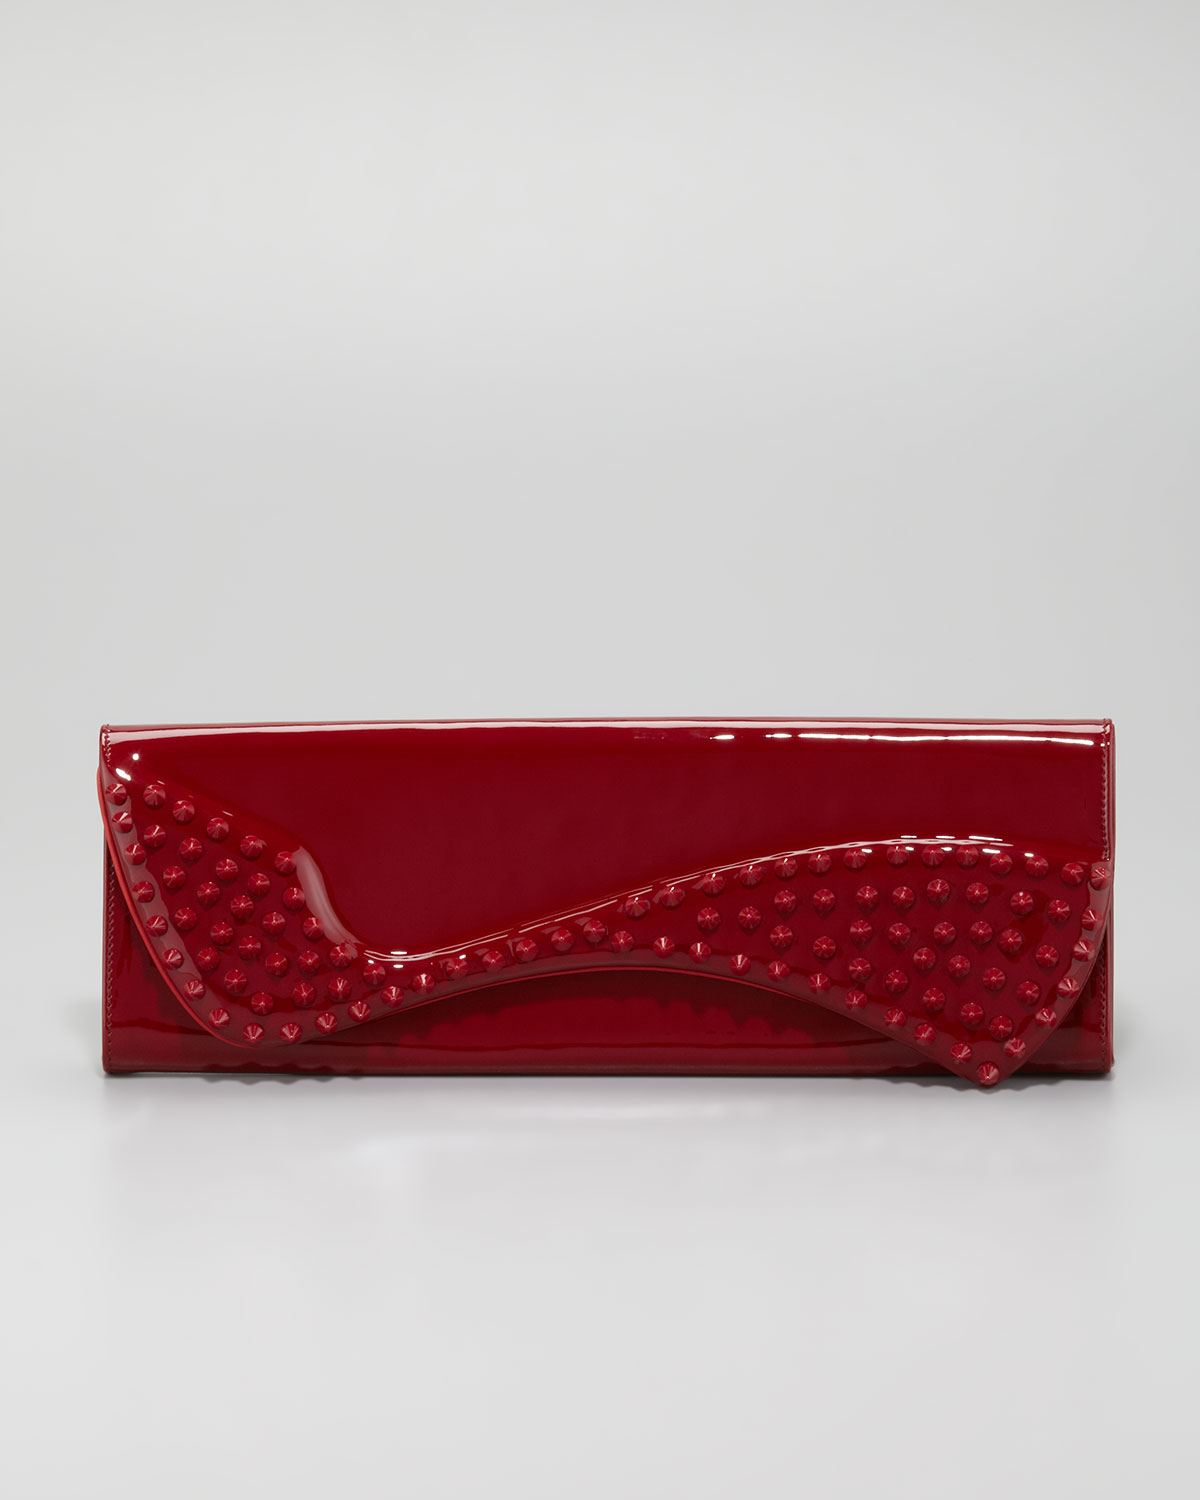 Christian louboutin Pigalle Spikes Patent Clutch Bag Red ...